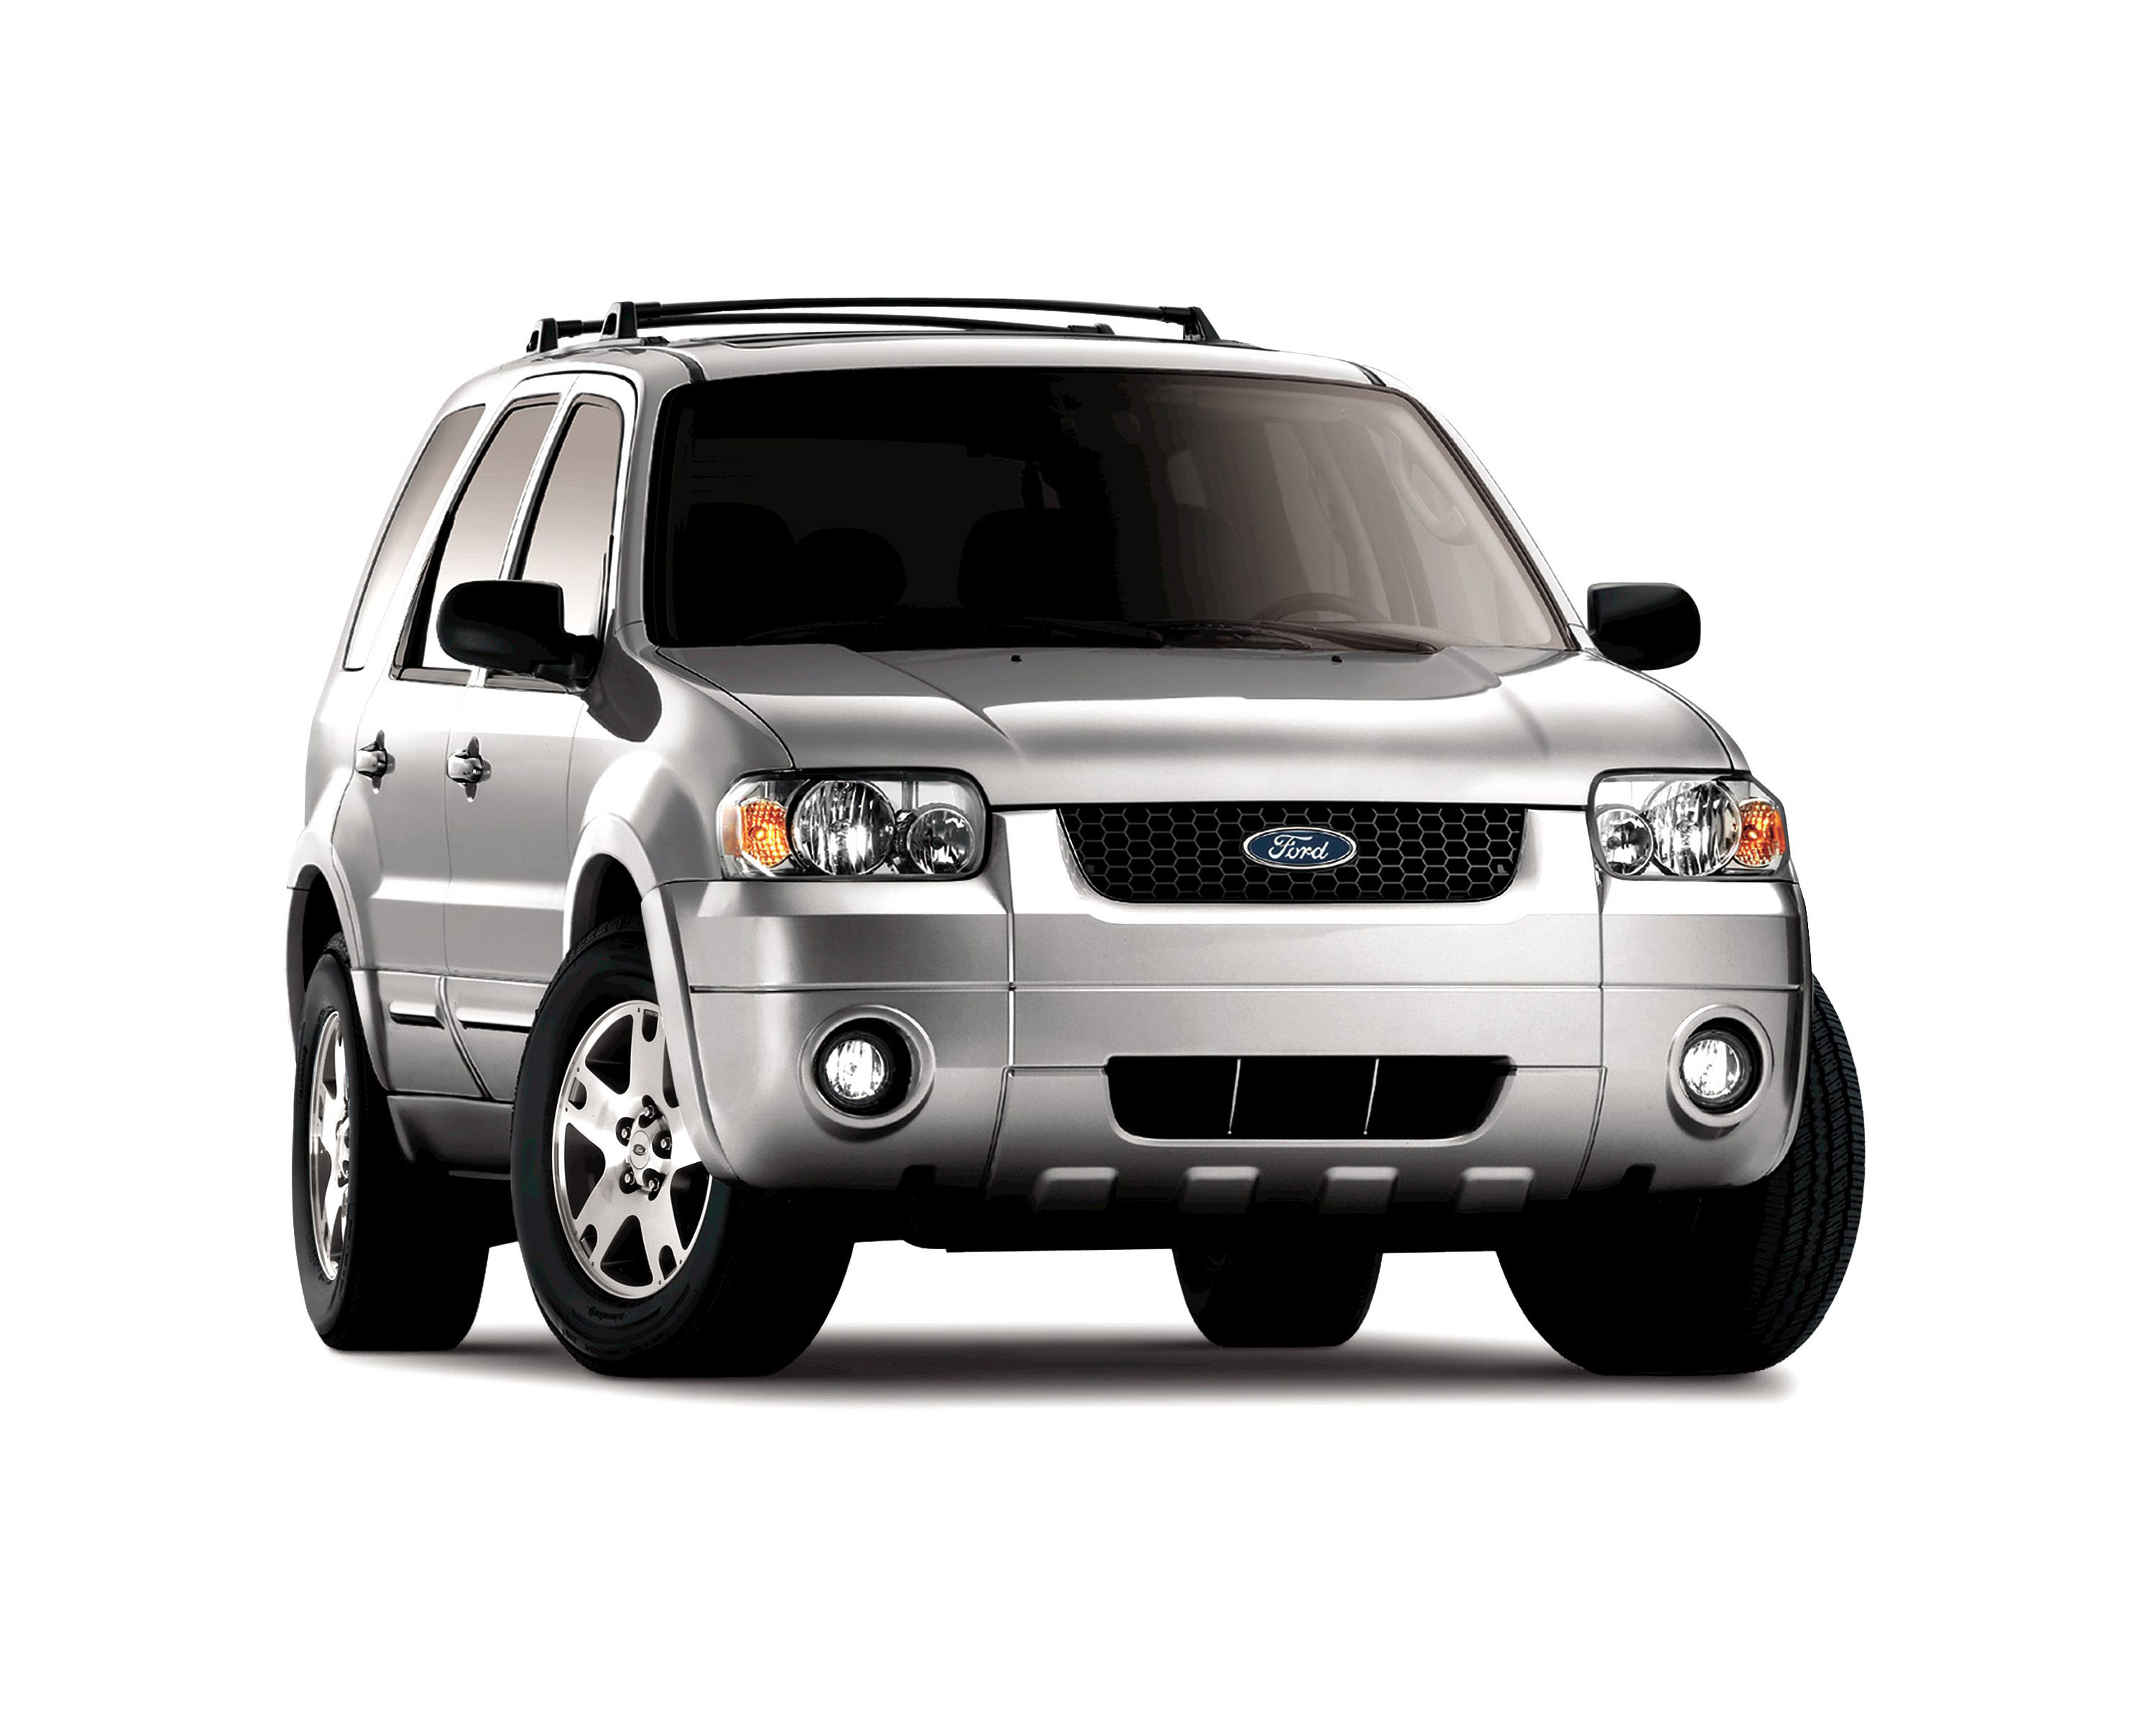 2006 Ford Escape Top Speed